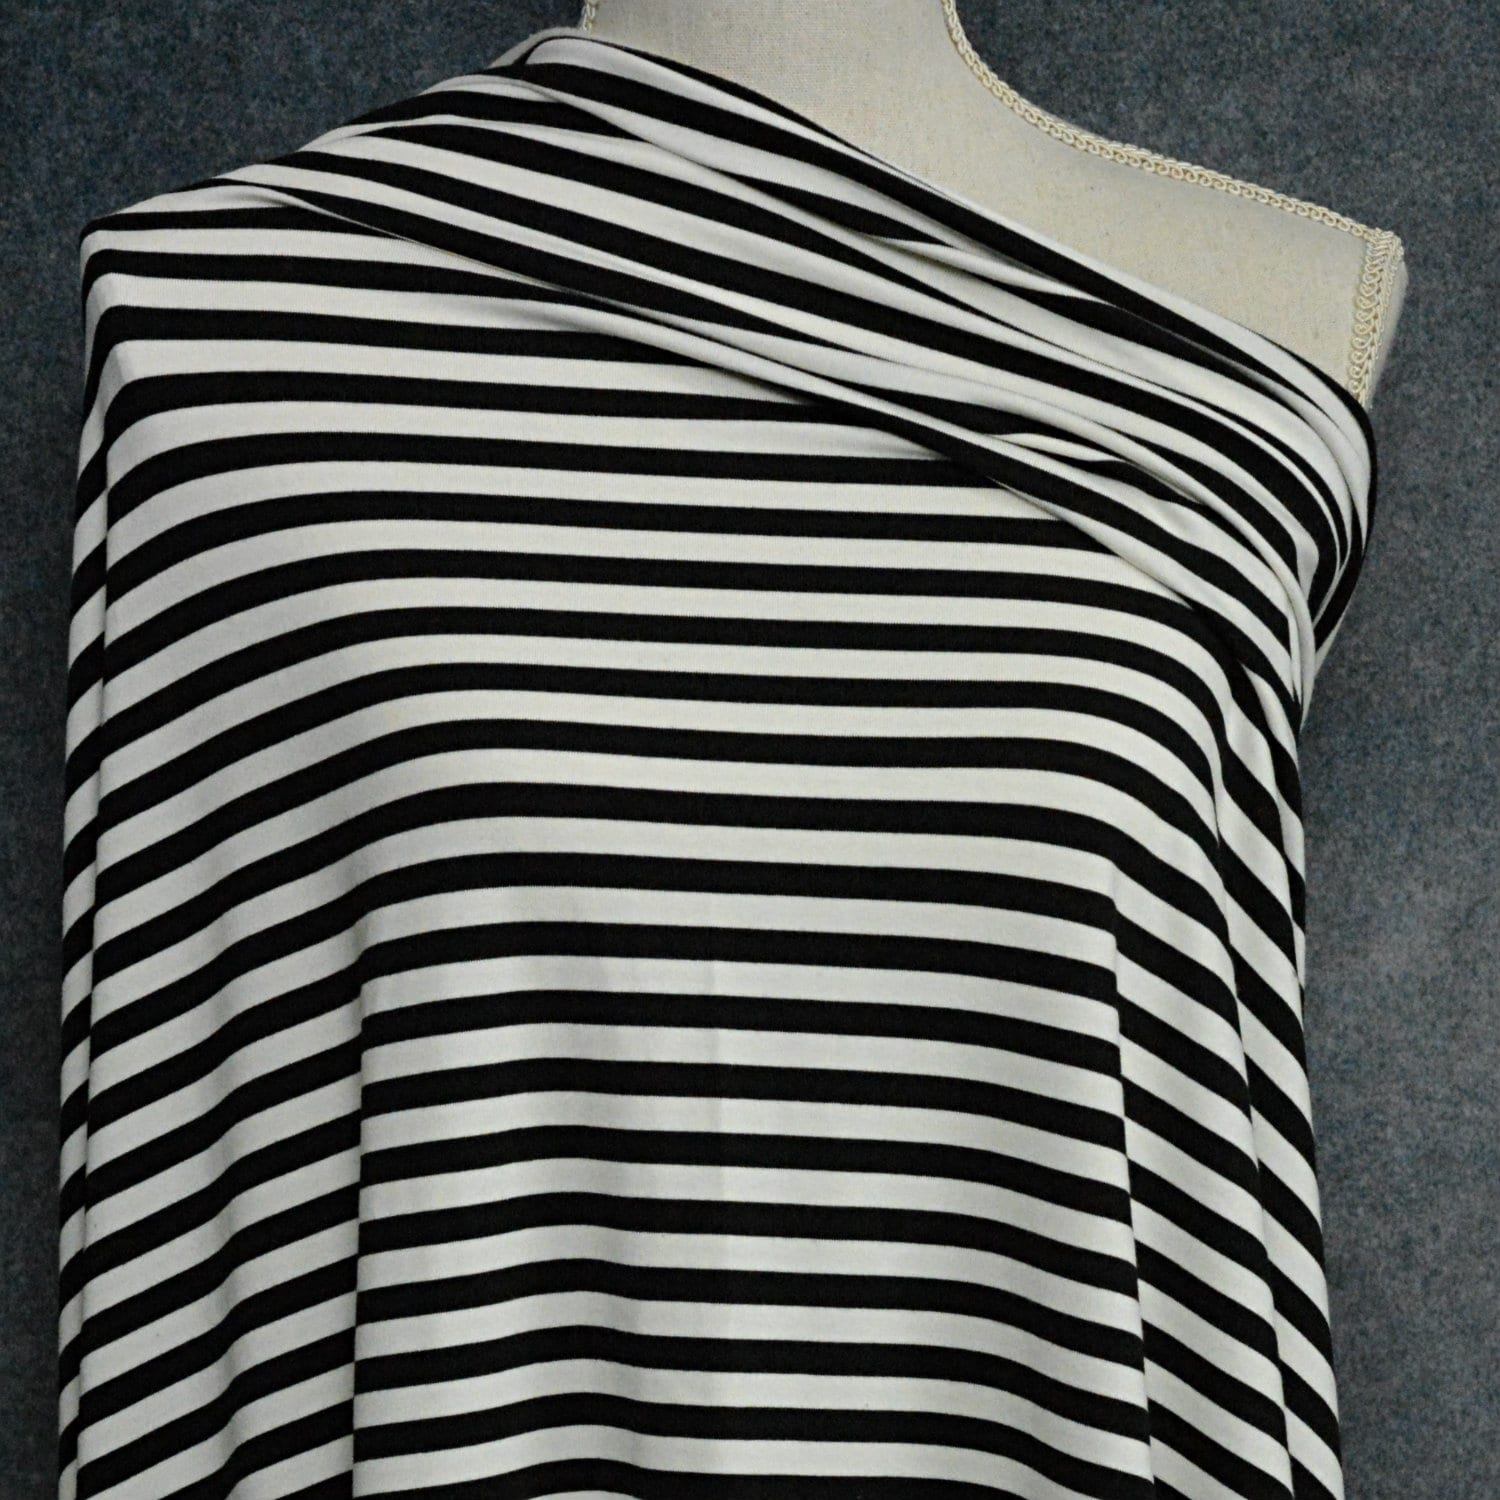 03a12cad907 Bamboo Cotton Jersey 3/8